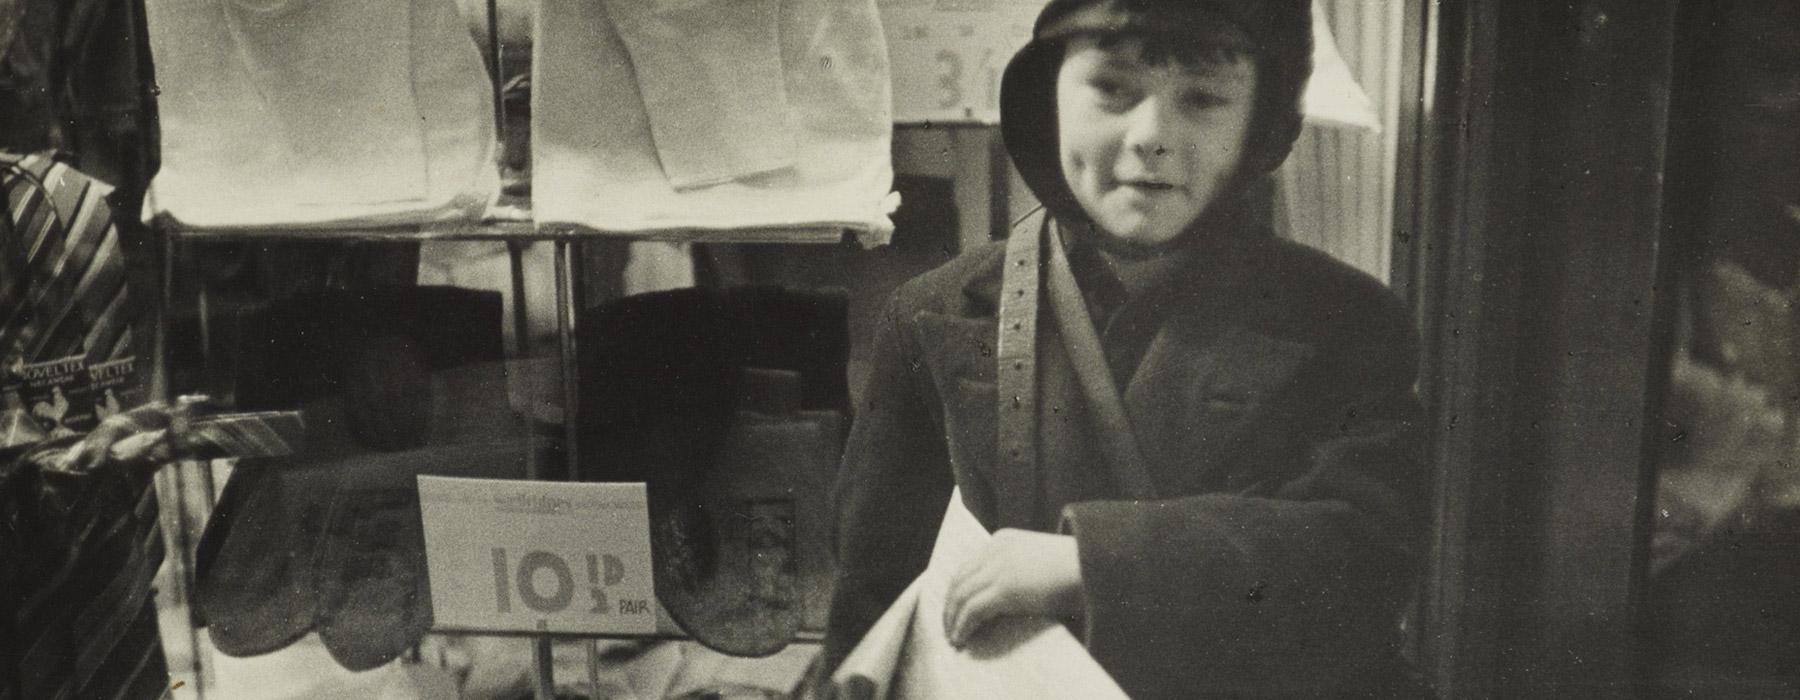 Wellington's smallest newsboy, Cuba St, 1938, Wellington, by Eric Lee-Johnson. Purchased 1997 with New Zealand Lottery Grants Board funds. Te Papa (O.006586)